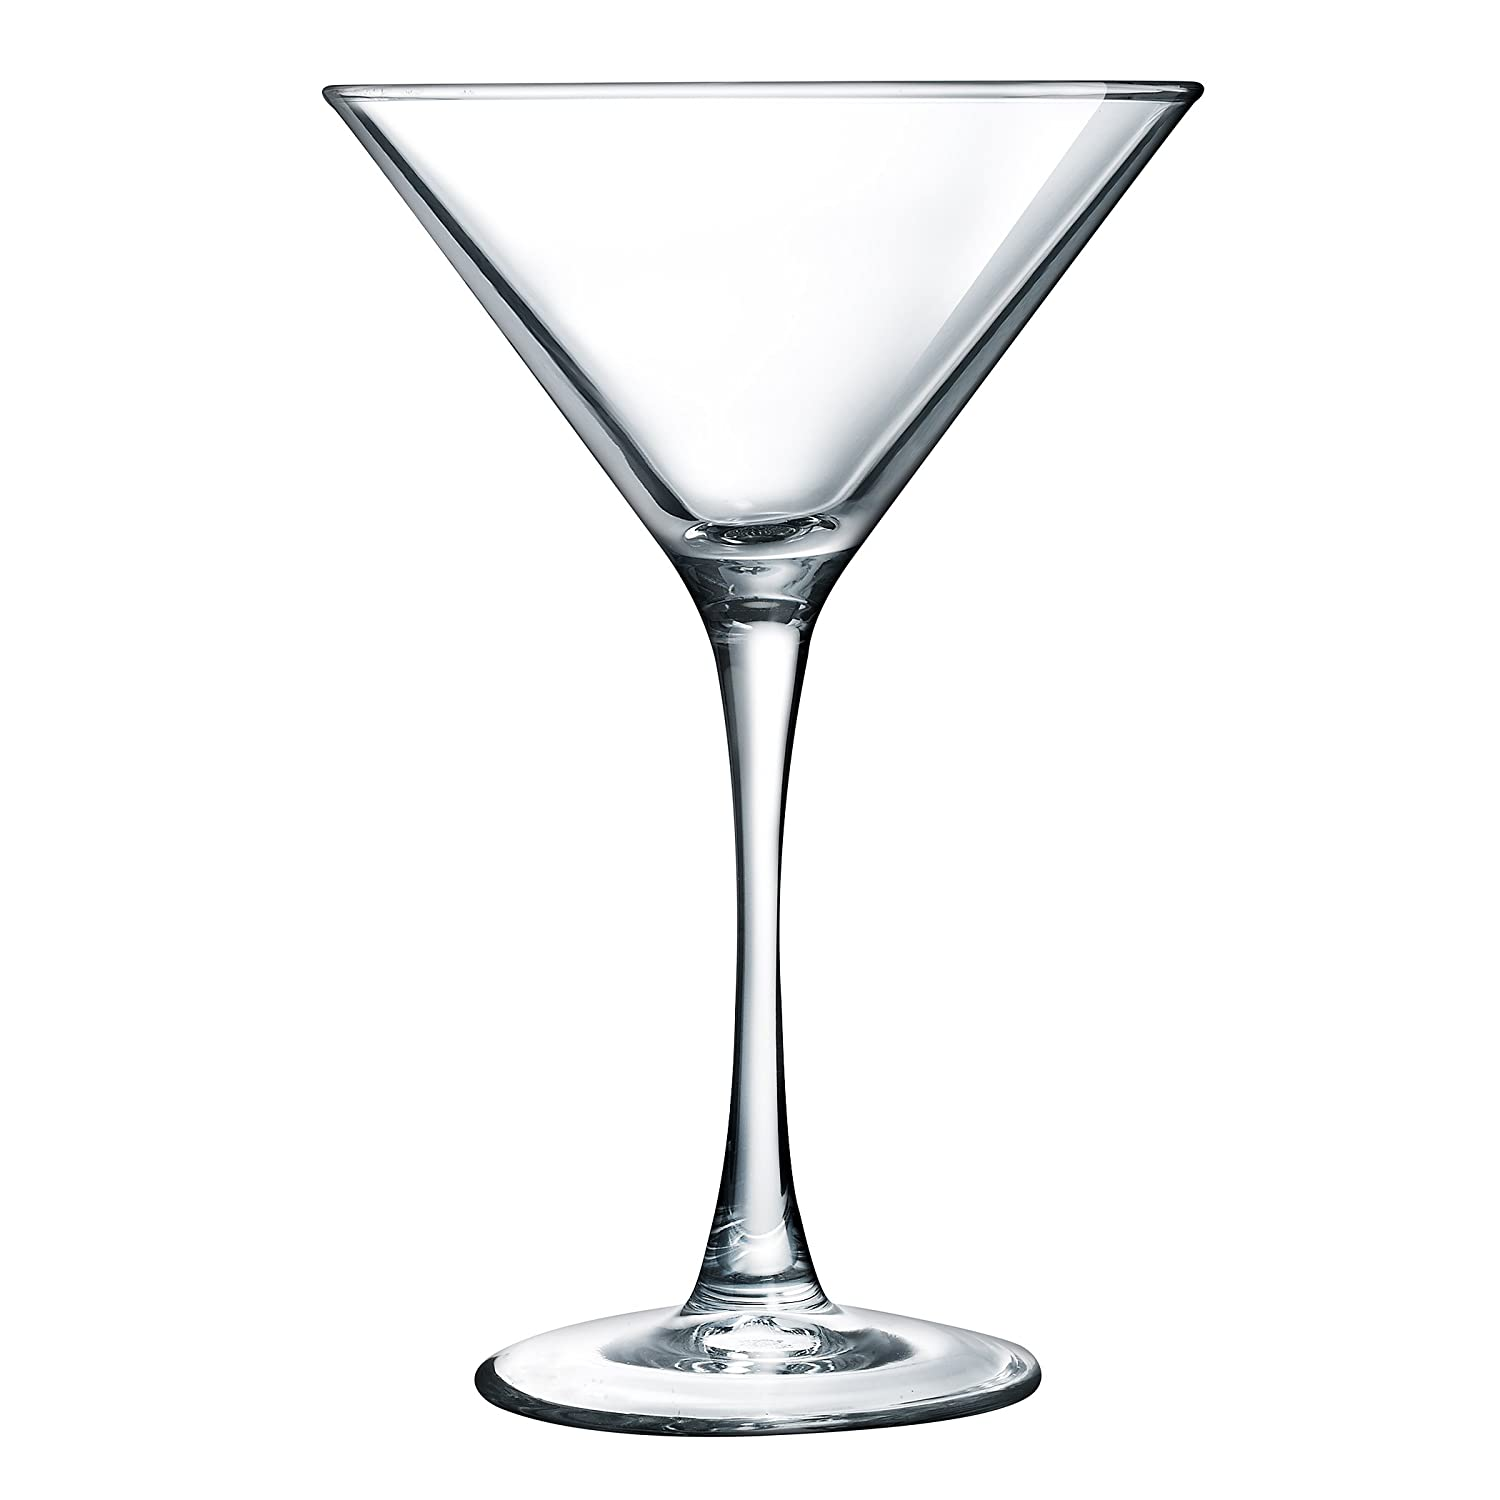 Luminarc ARC International Atlas Martini Glass (Set of 4), 7.5 oz, Clear J8976